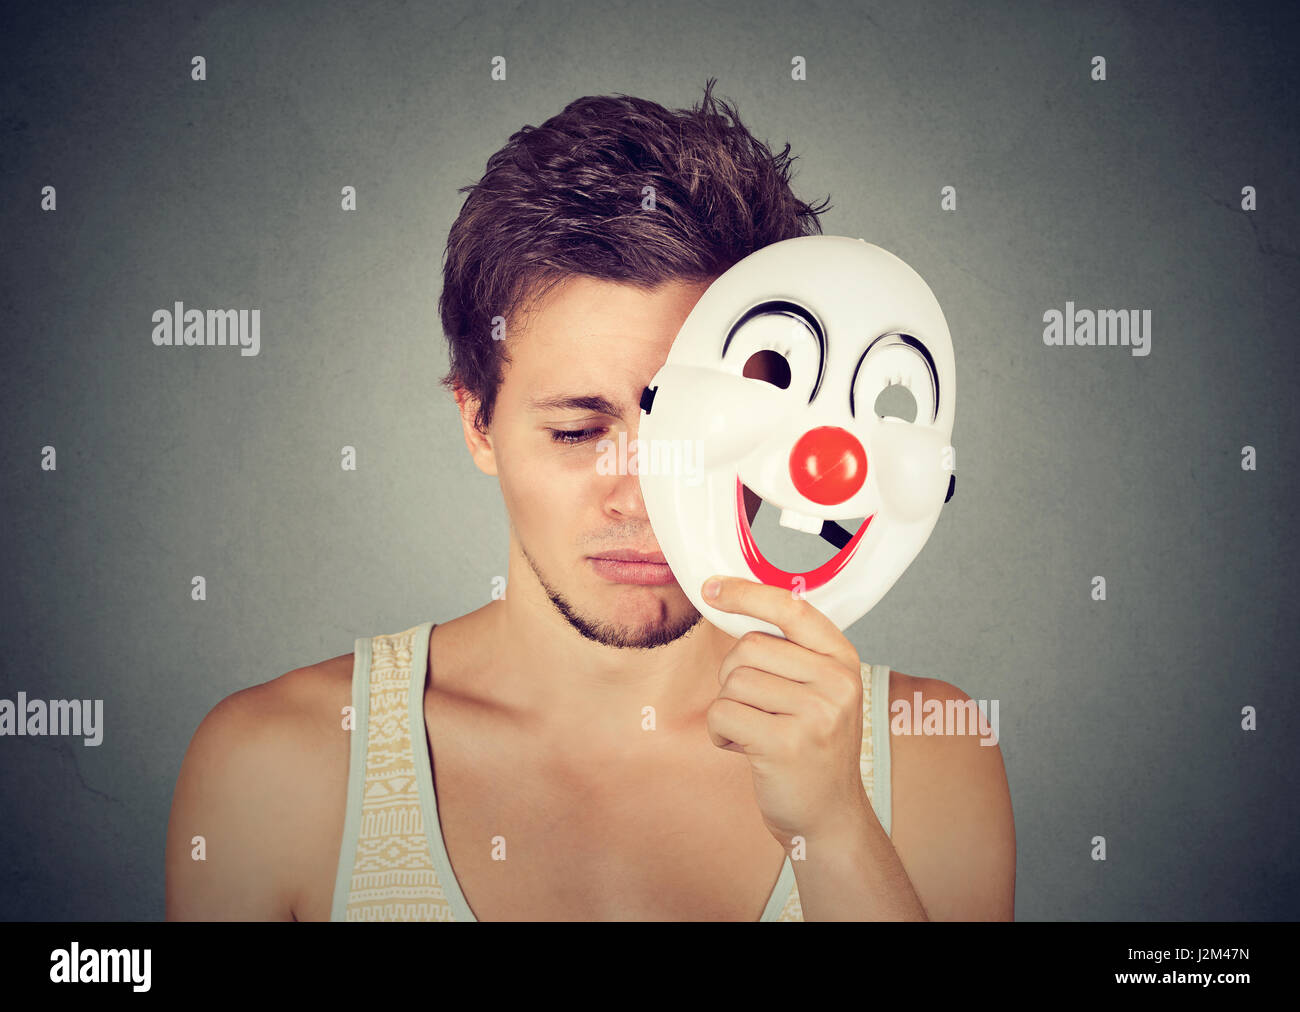 Young sad man taking off clown mask isolated on gray wall background. Human emotions - Stock Image